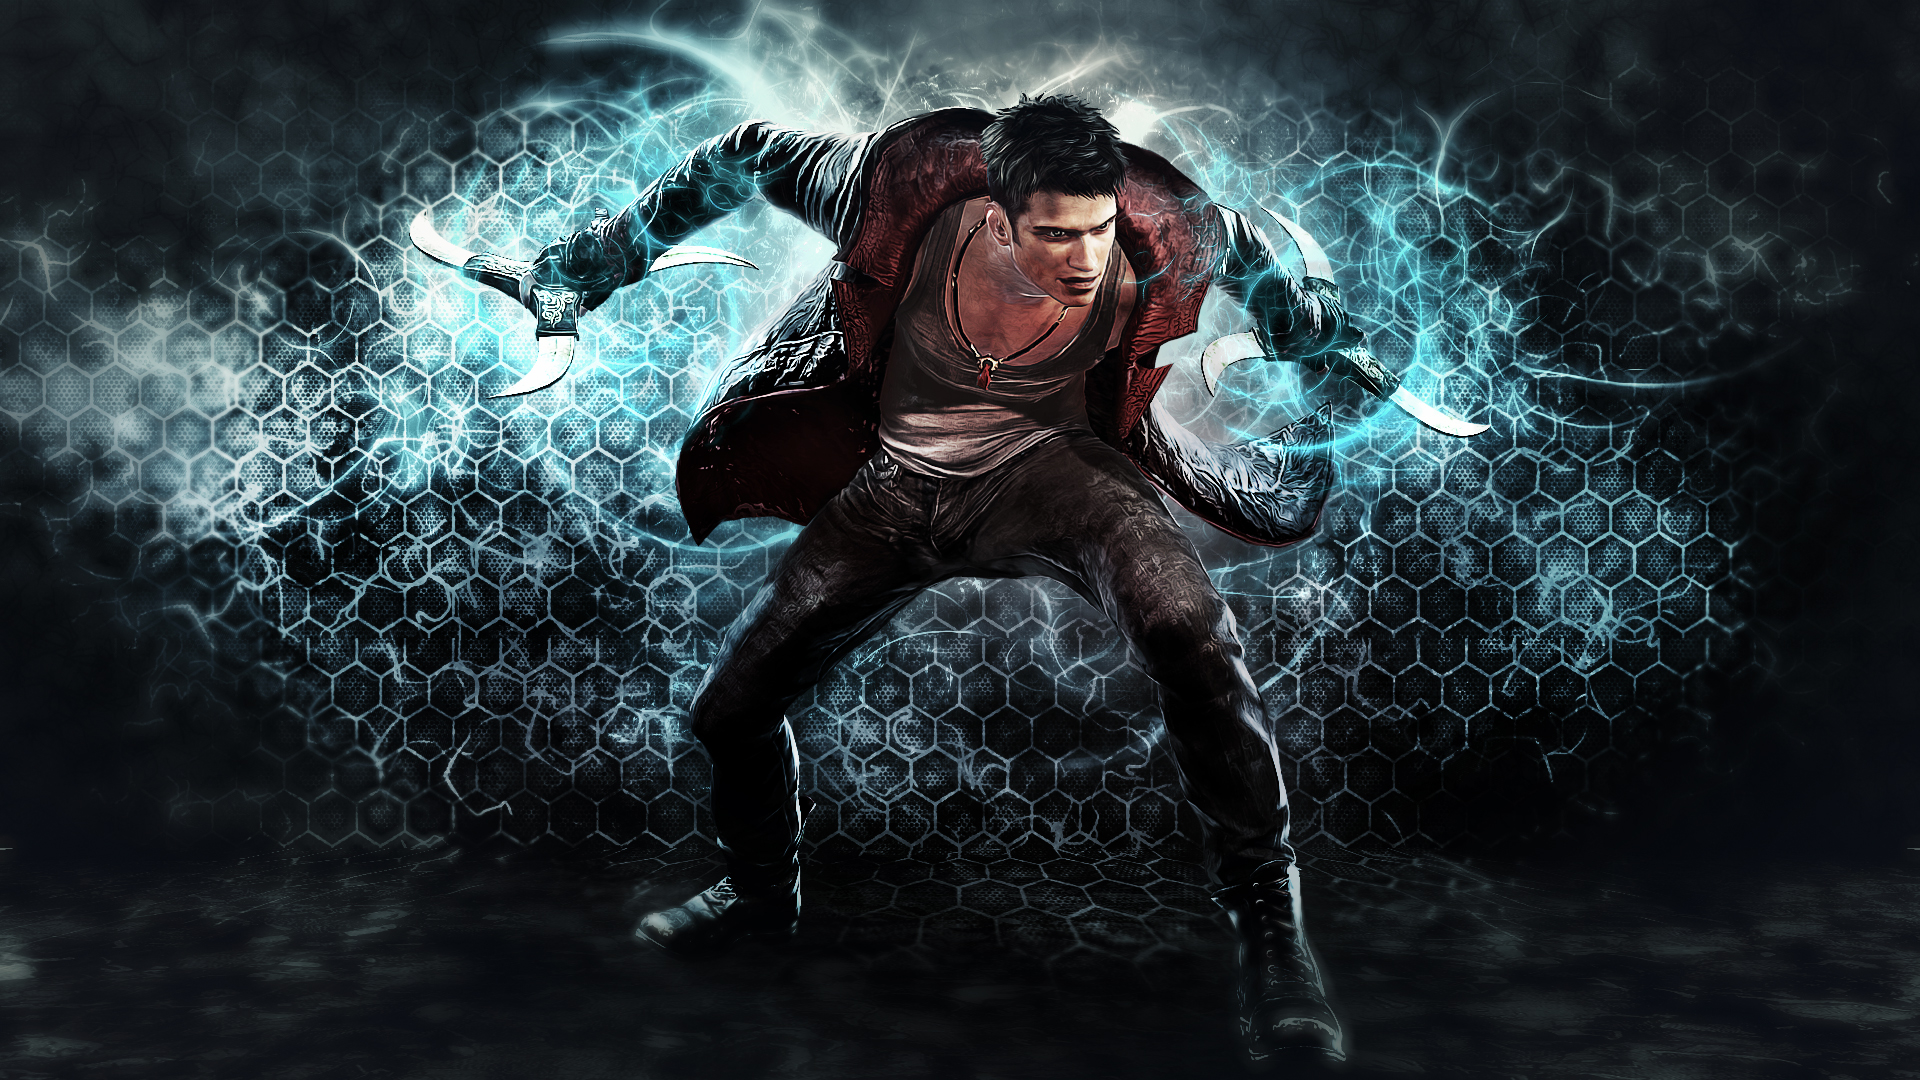 Free Download Dante Devil May Cry 5 Wallpaper 760764 1920x1080